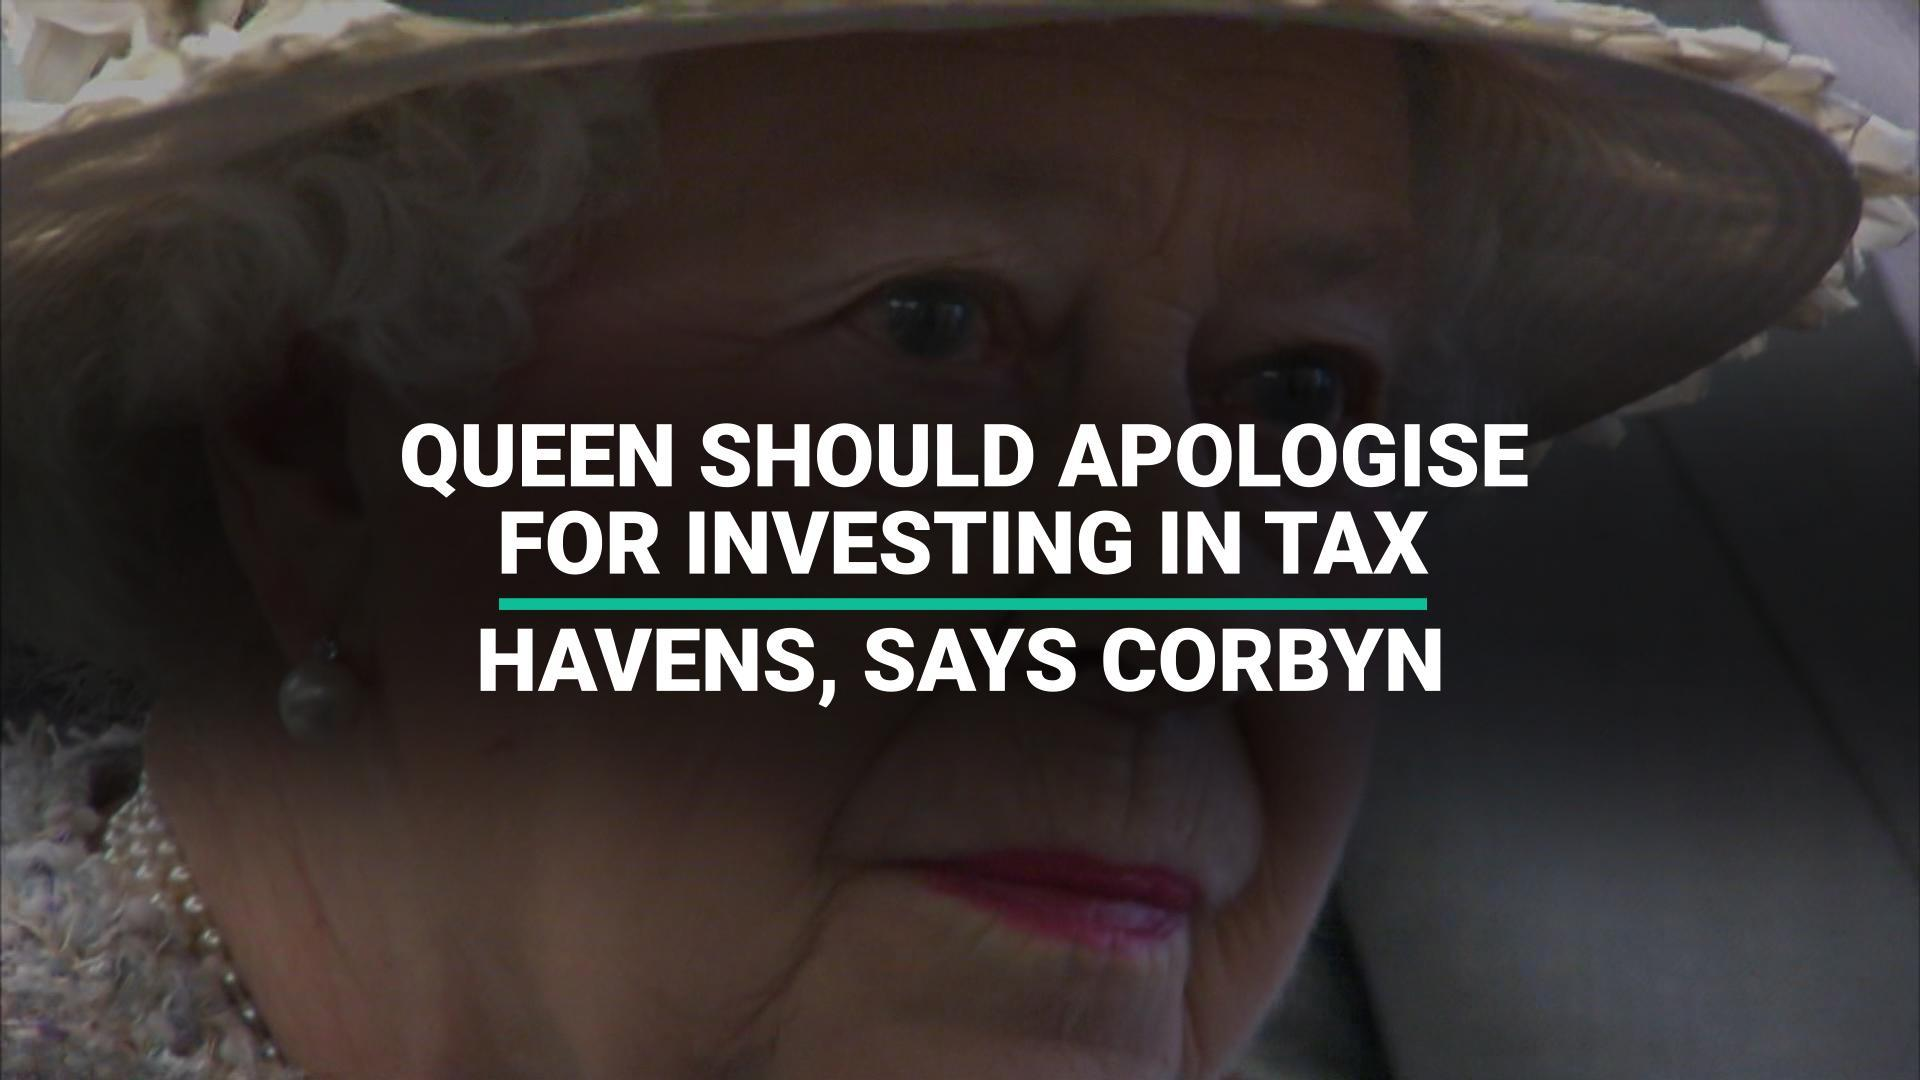 Paradise Papers: Queen Should Apologise For Investing In Tax Havens, Says Jeremy Corbyn